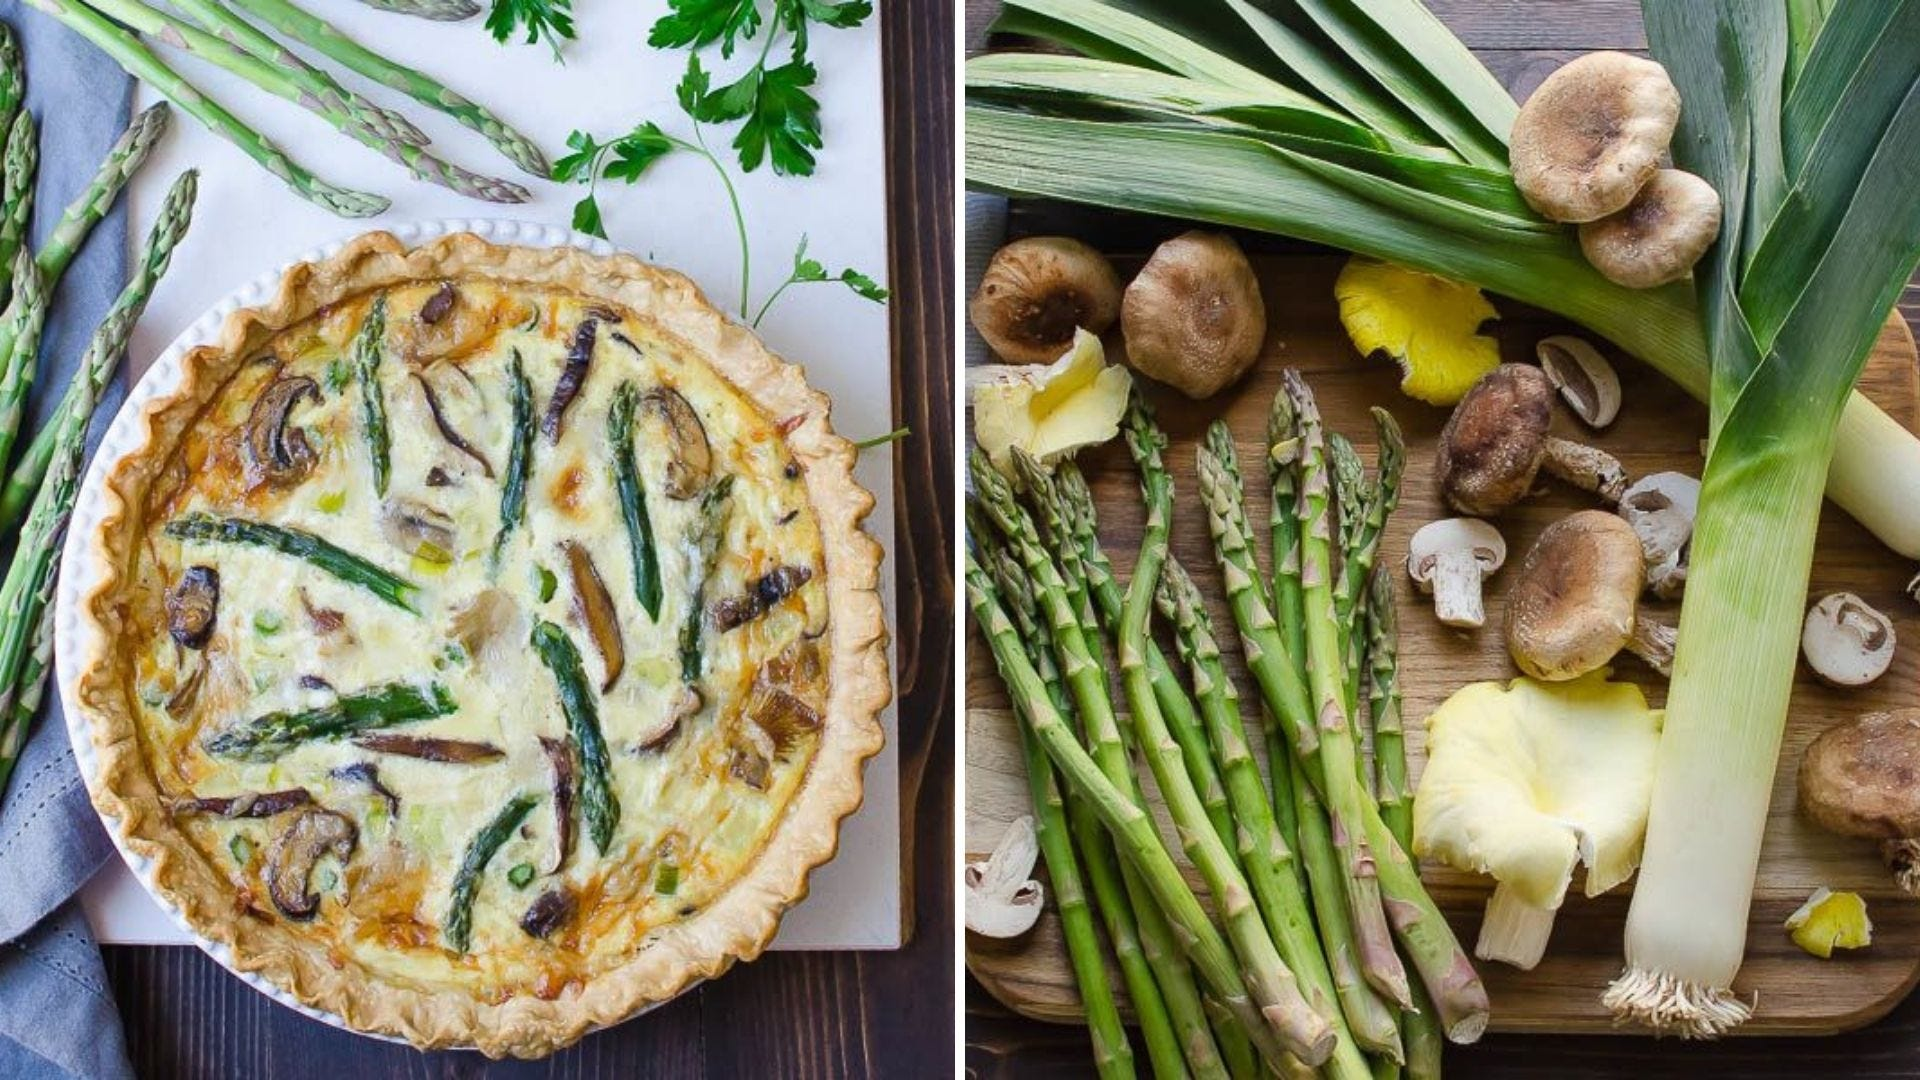 A quiche with asparagus and mushrooms, and a cutting board covered with produce.